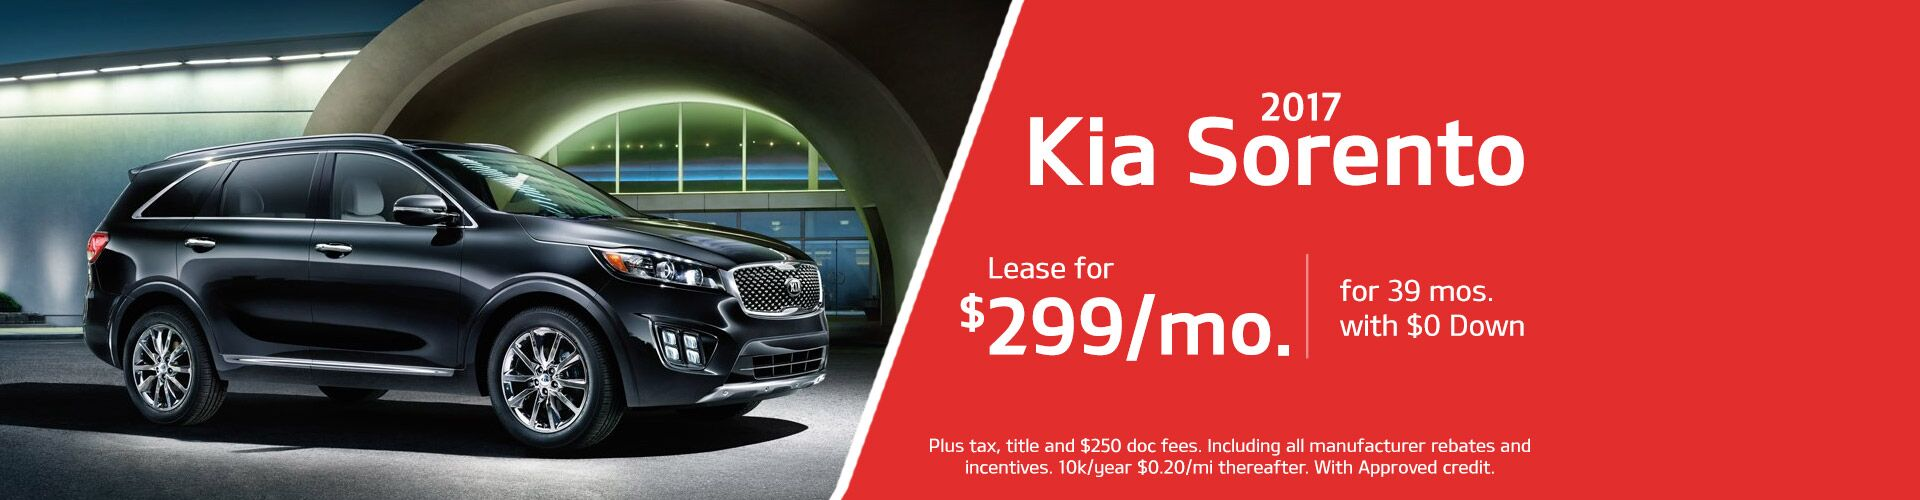 Spitzer Used Cars Monroeville